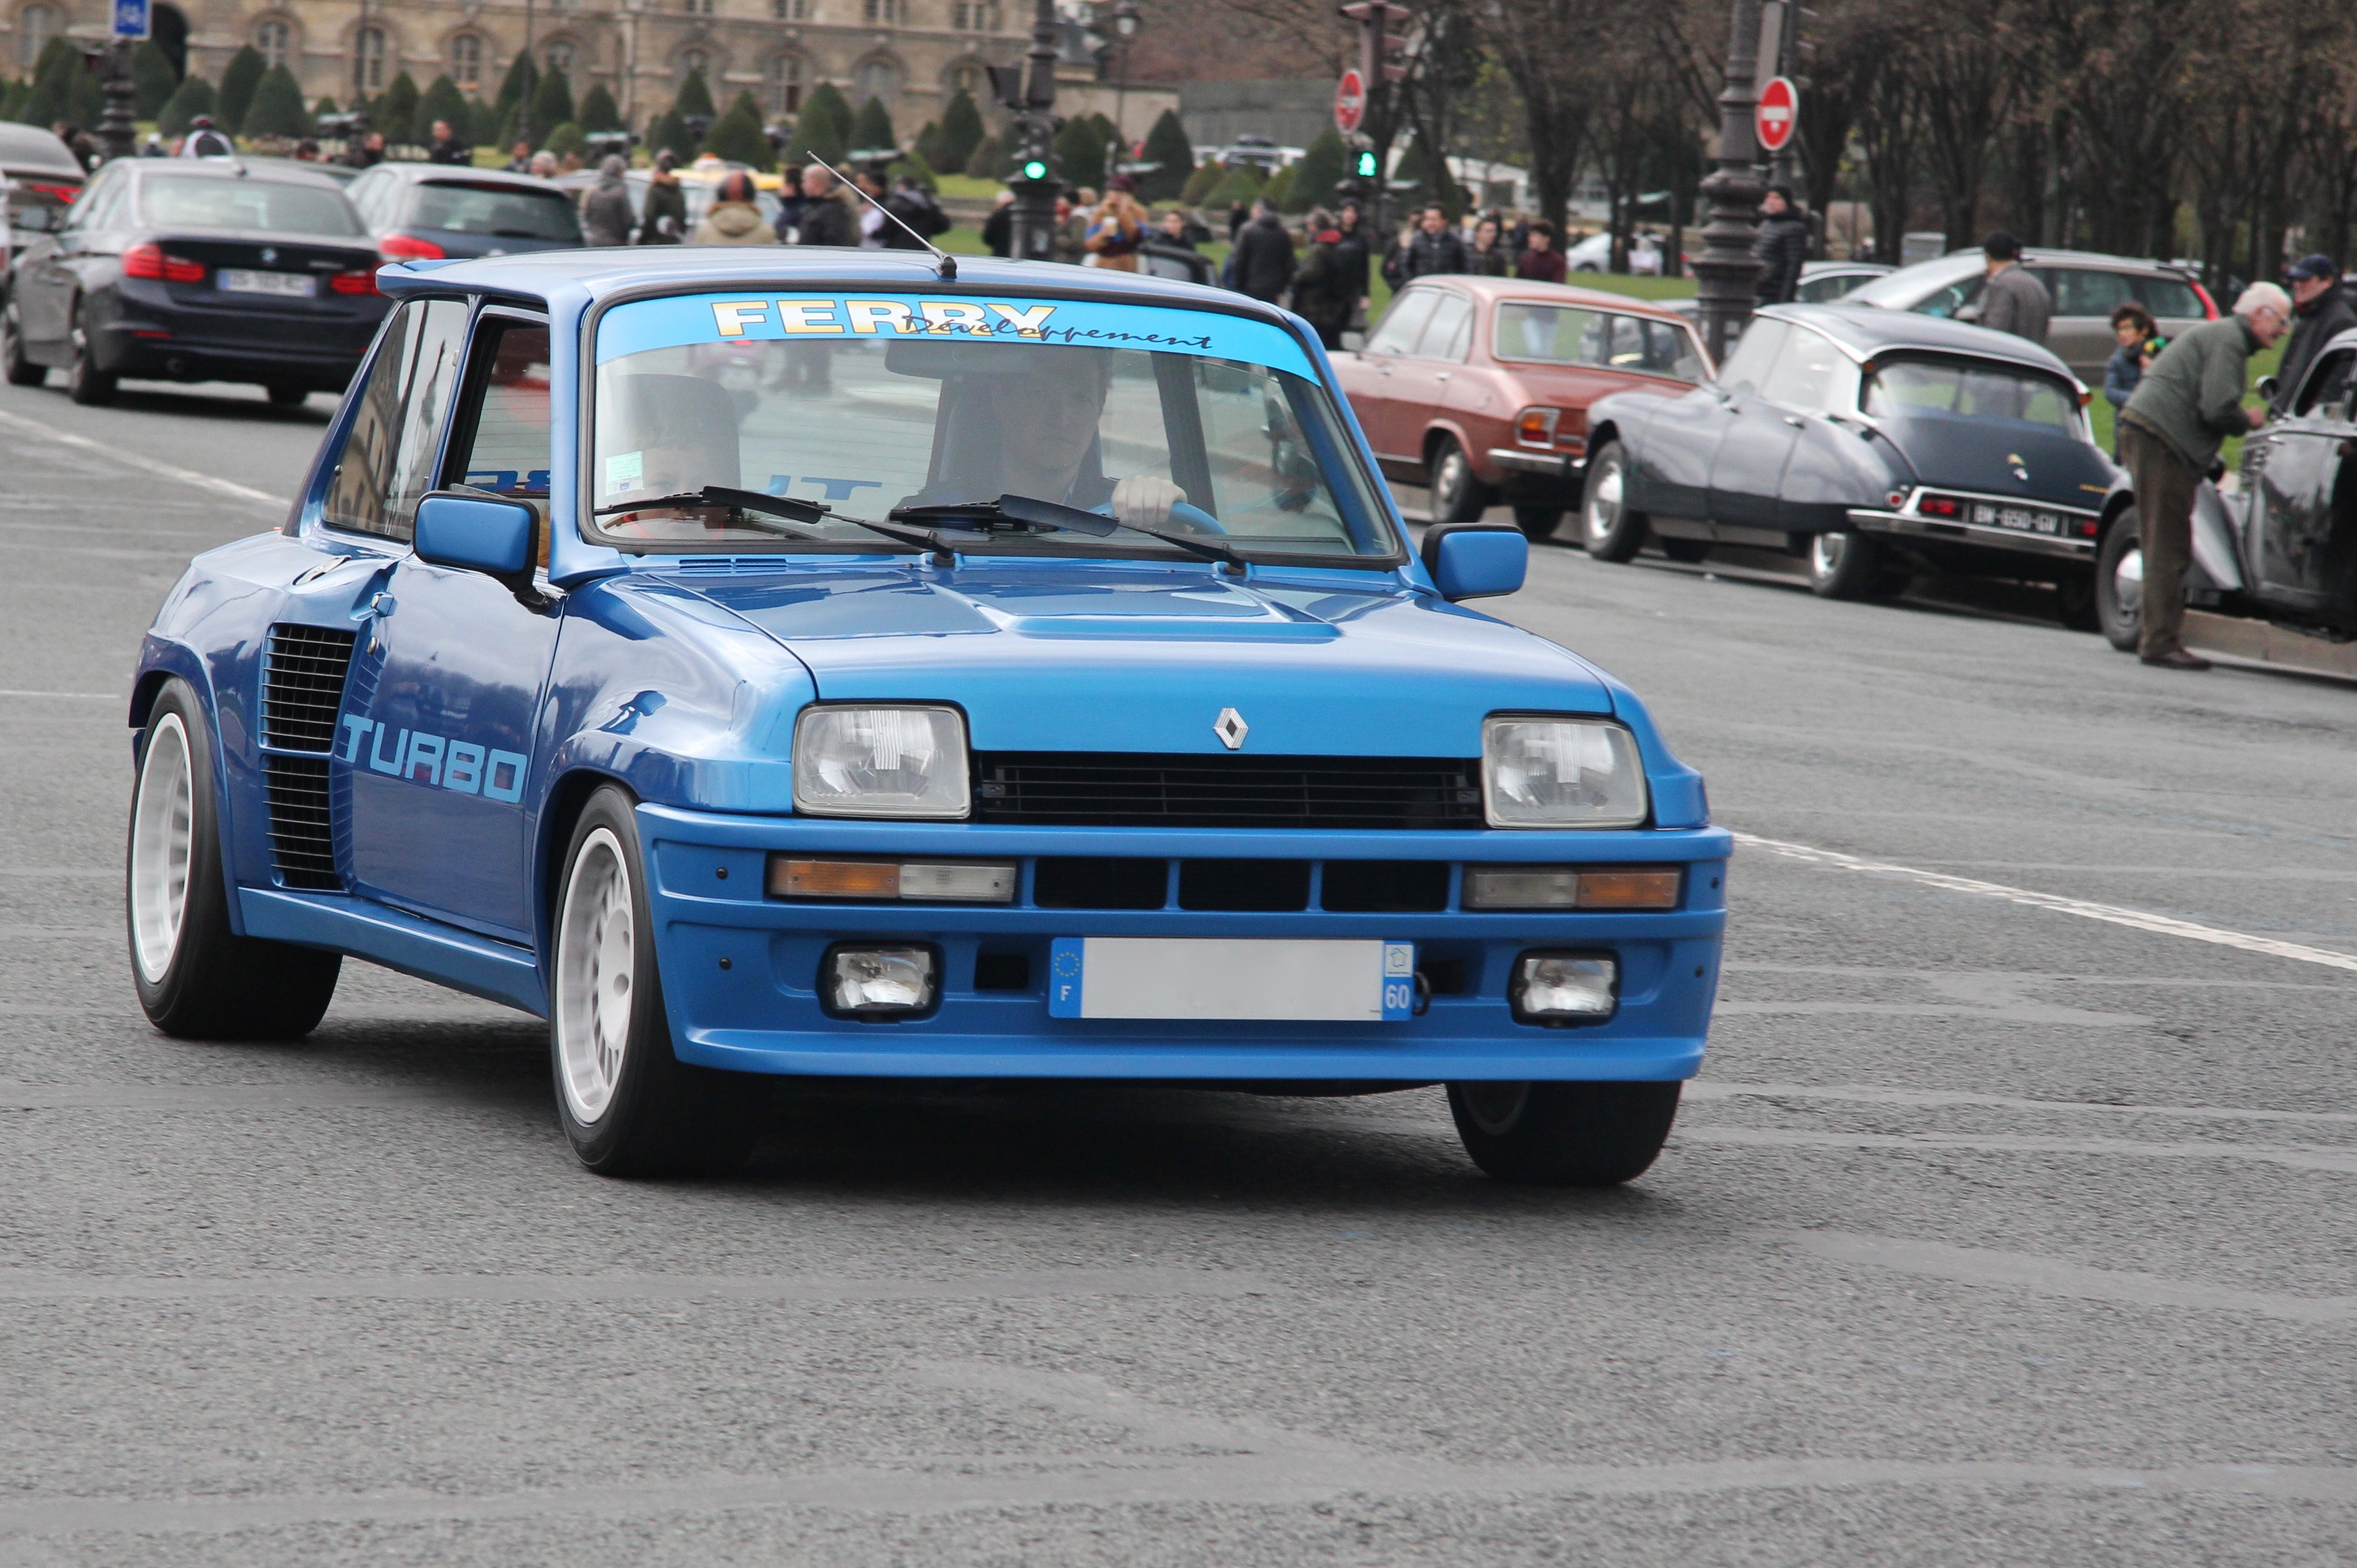 Renault 5 Turbo - Traversée de Paris Hivernale 2019 - photo Ludo Ferrari